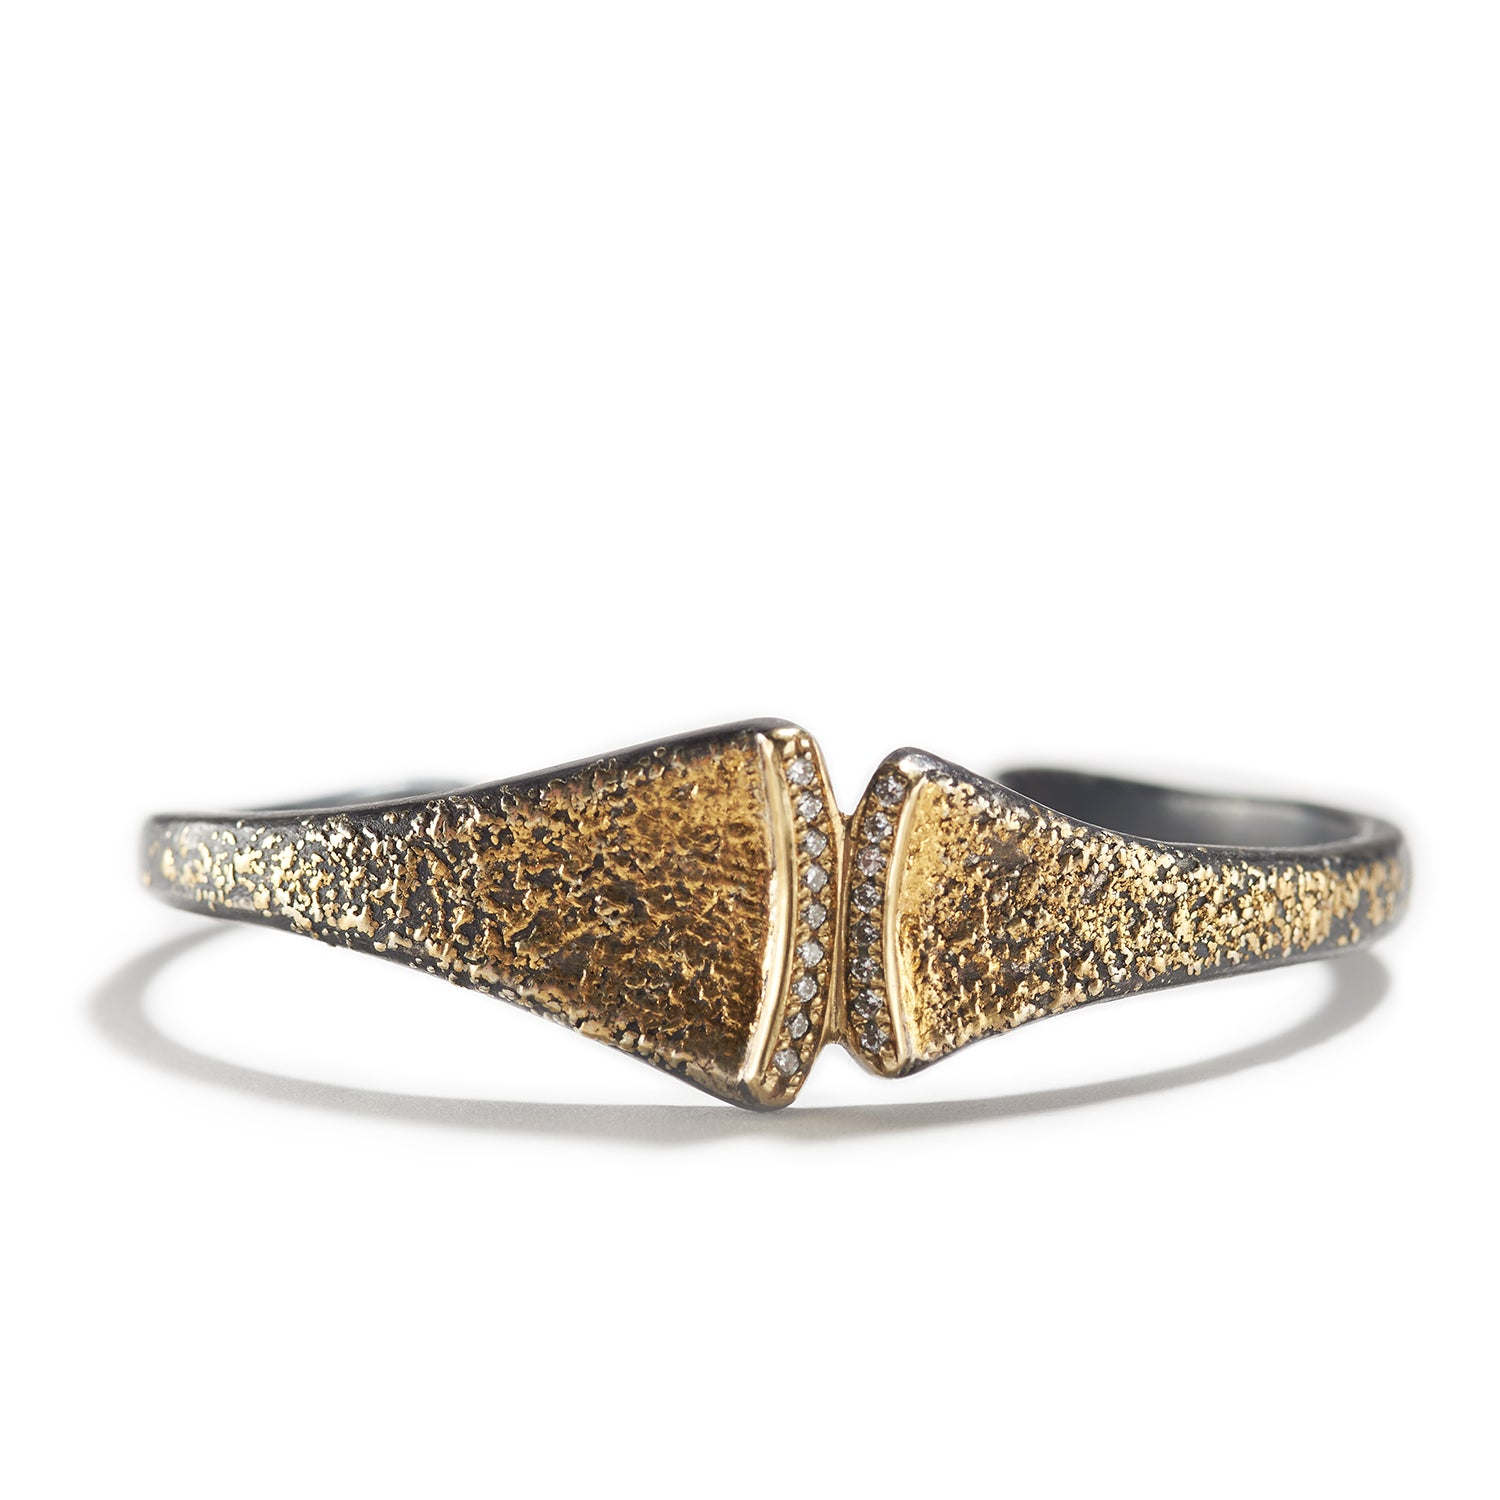 Fused Gold & Diamonds Cuff Bracelet